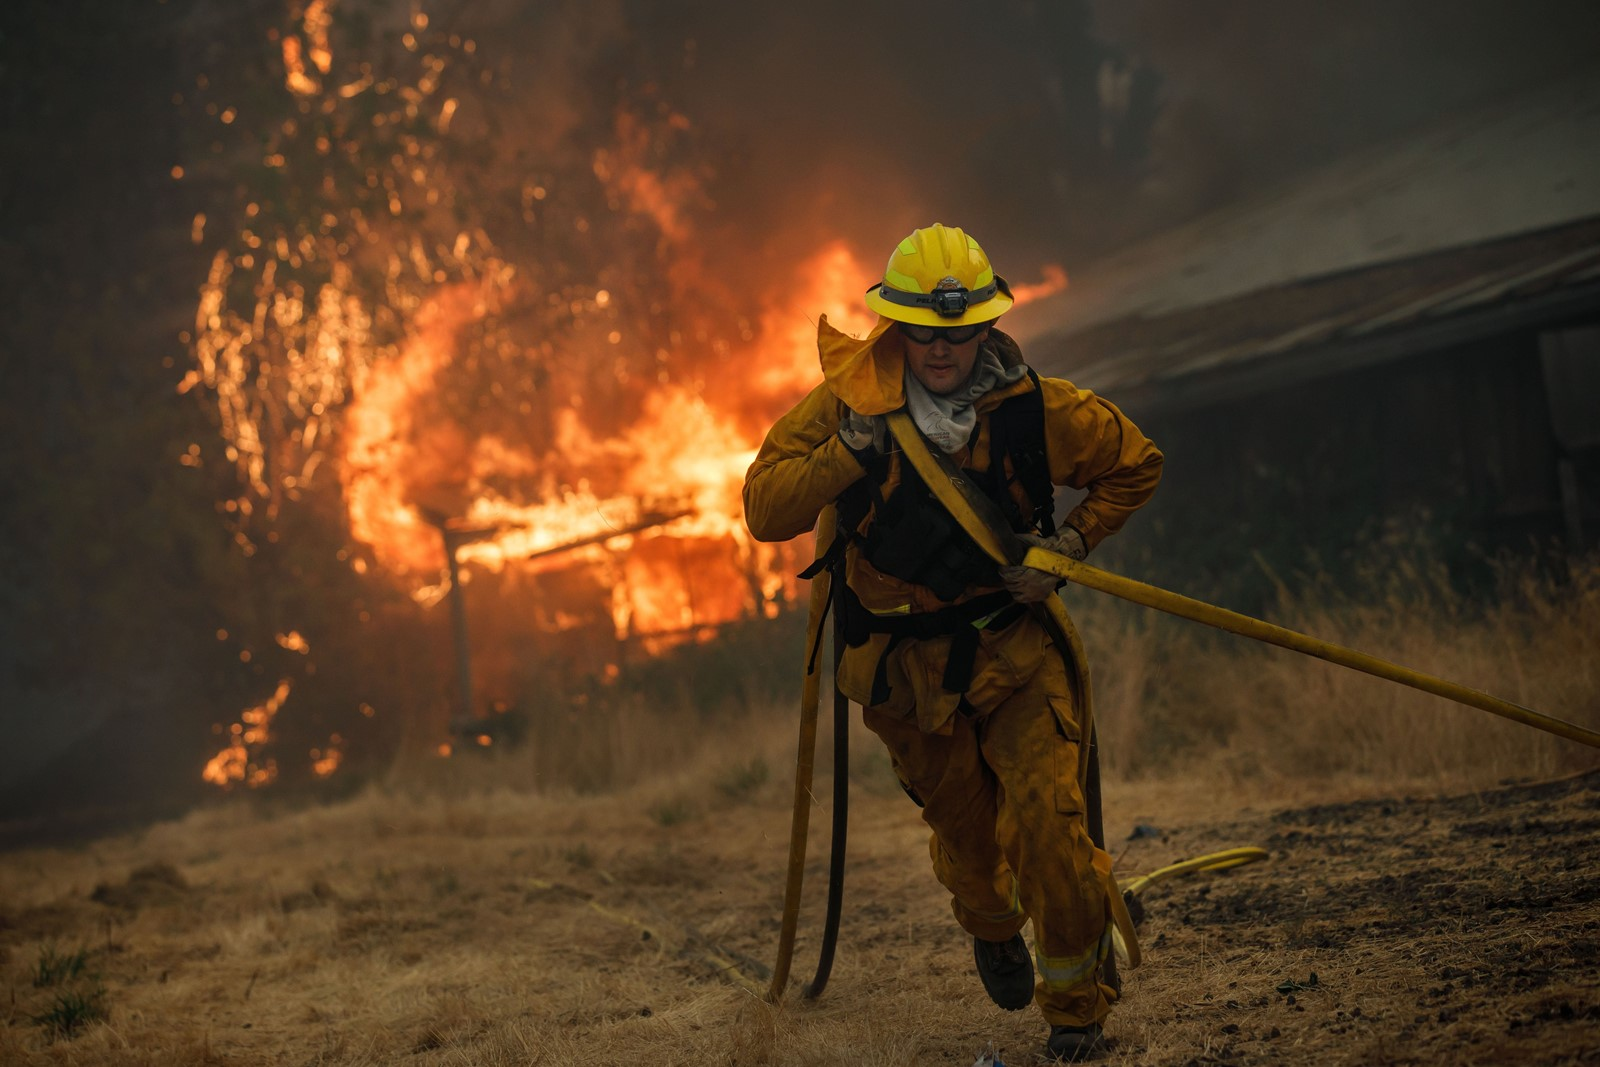 A West Covina firefighter pulls a hose as the River fire consumes a barn near Lakeport, California, on Tuesday. Containment is increasing on the 42,200-acre blaze, though another nearby grew quickly to 115,250 acres. There are 16 large wildfires burning throughout California. — Photograph: Marcus Yam/Los Angeles Times.